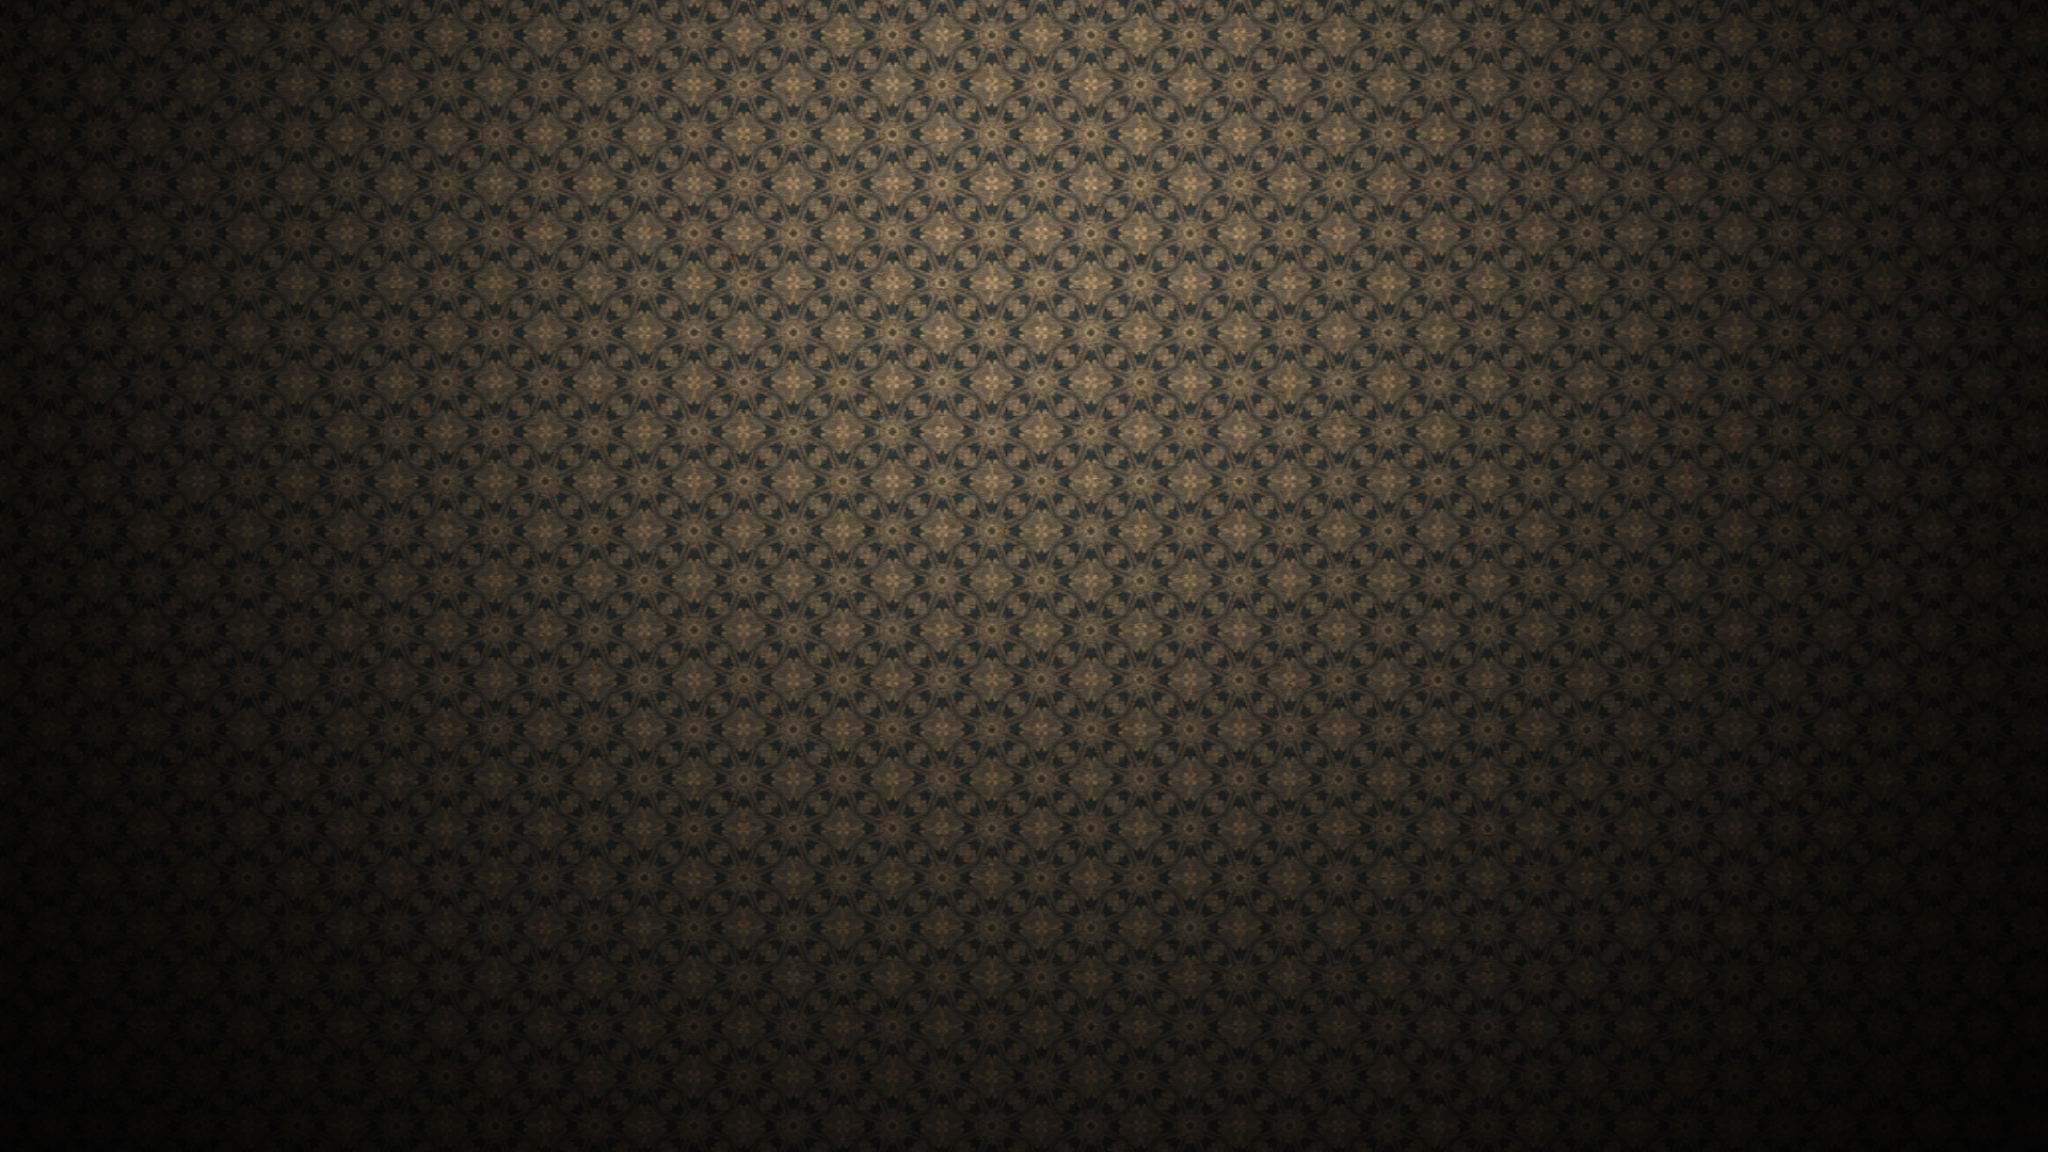 Hd Texture Backgrounds